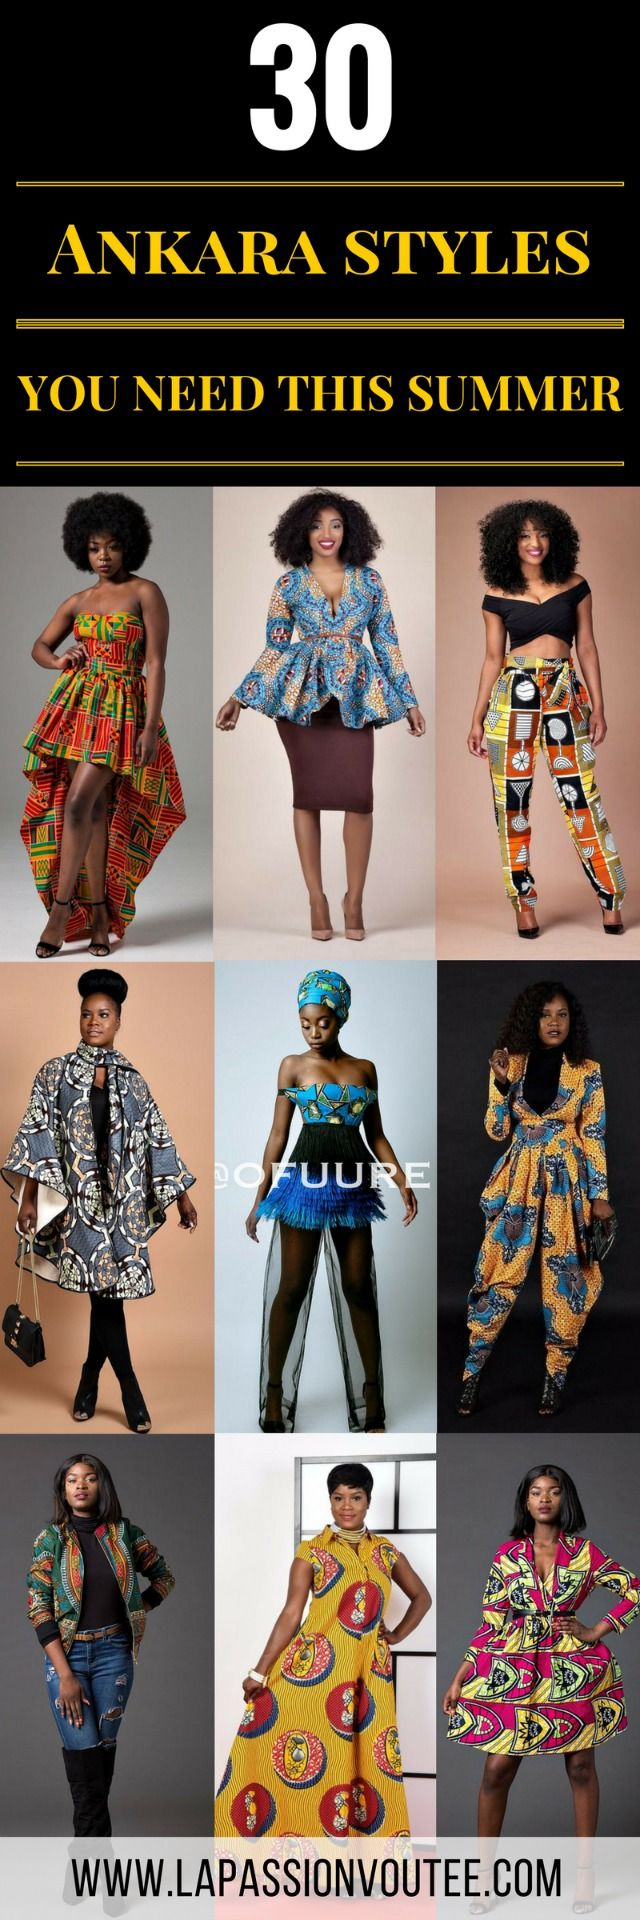 30 Stylish Ankara Styles to Try Right Now. If you are searching for some of the hottest styles this season, you need to read this article to discover some of the most stunning Ankara dresses, skirts, tops, and pants. African print   Nigerian Fashion   African Fashion   African print dresses   African dresses   Dashiki Dress   African clothing   Dashiki skirt   African dress styles   African dress   African attire.